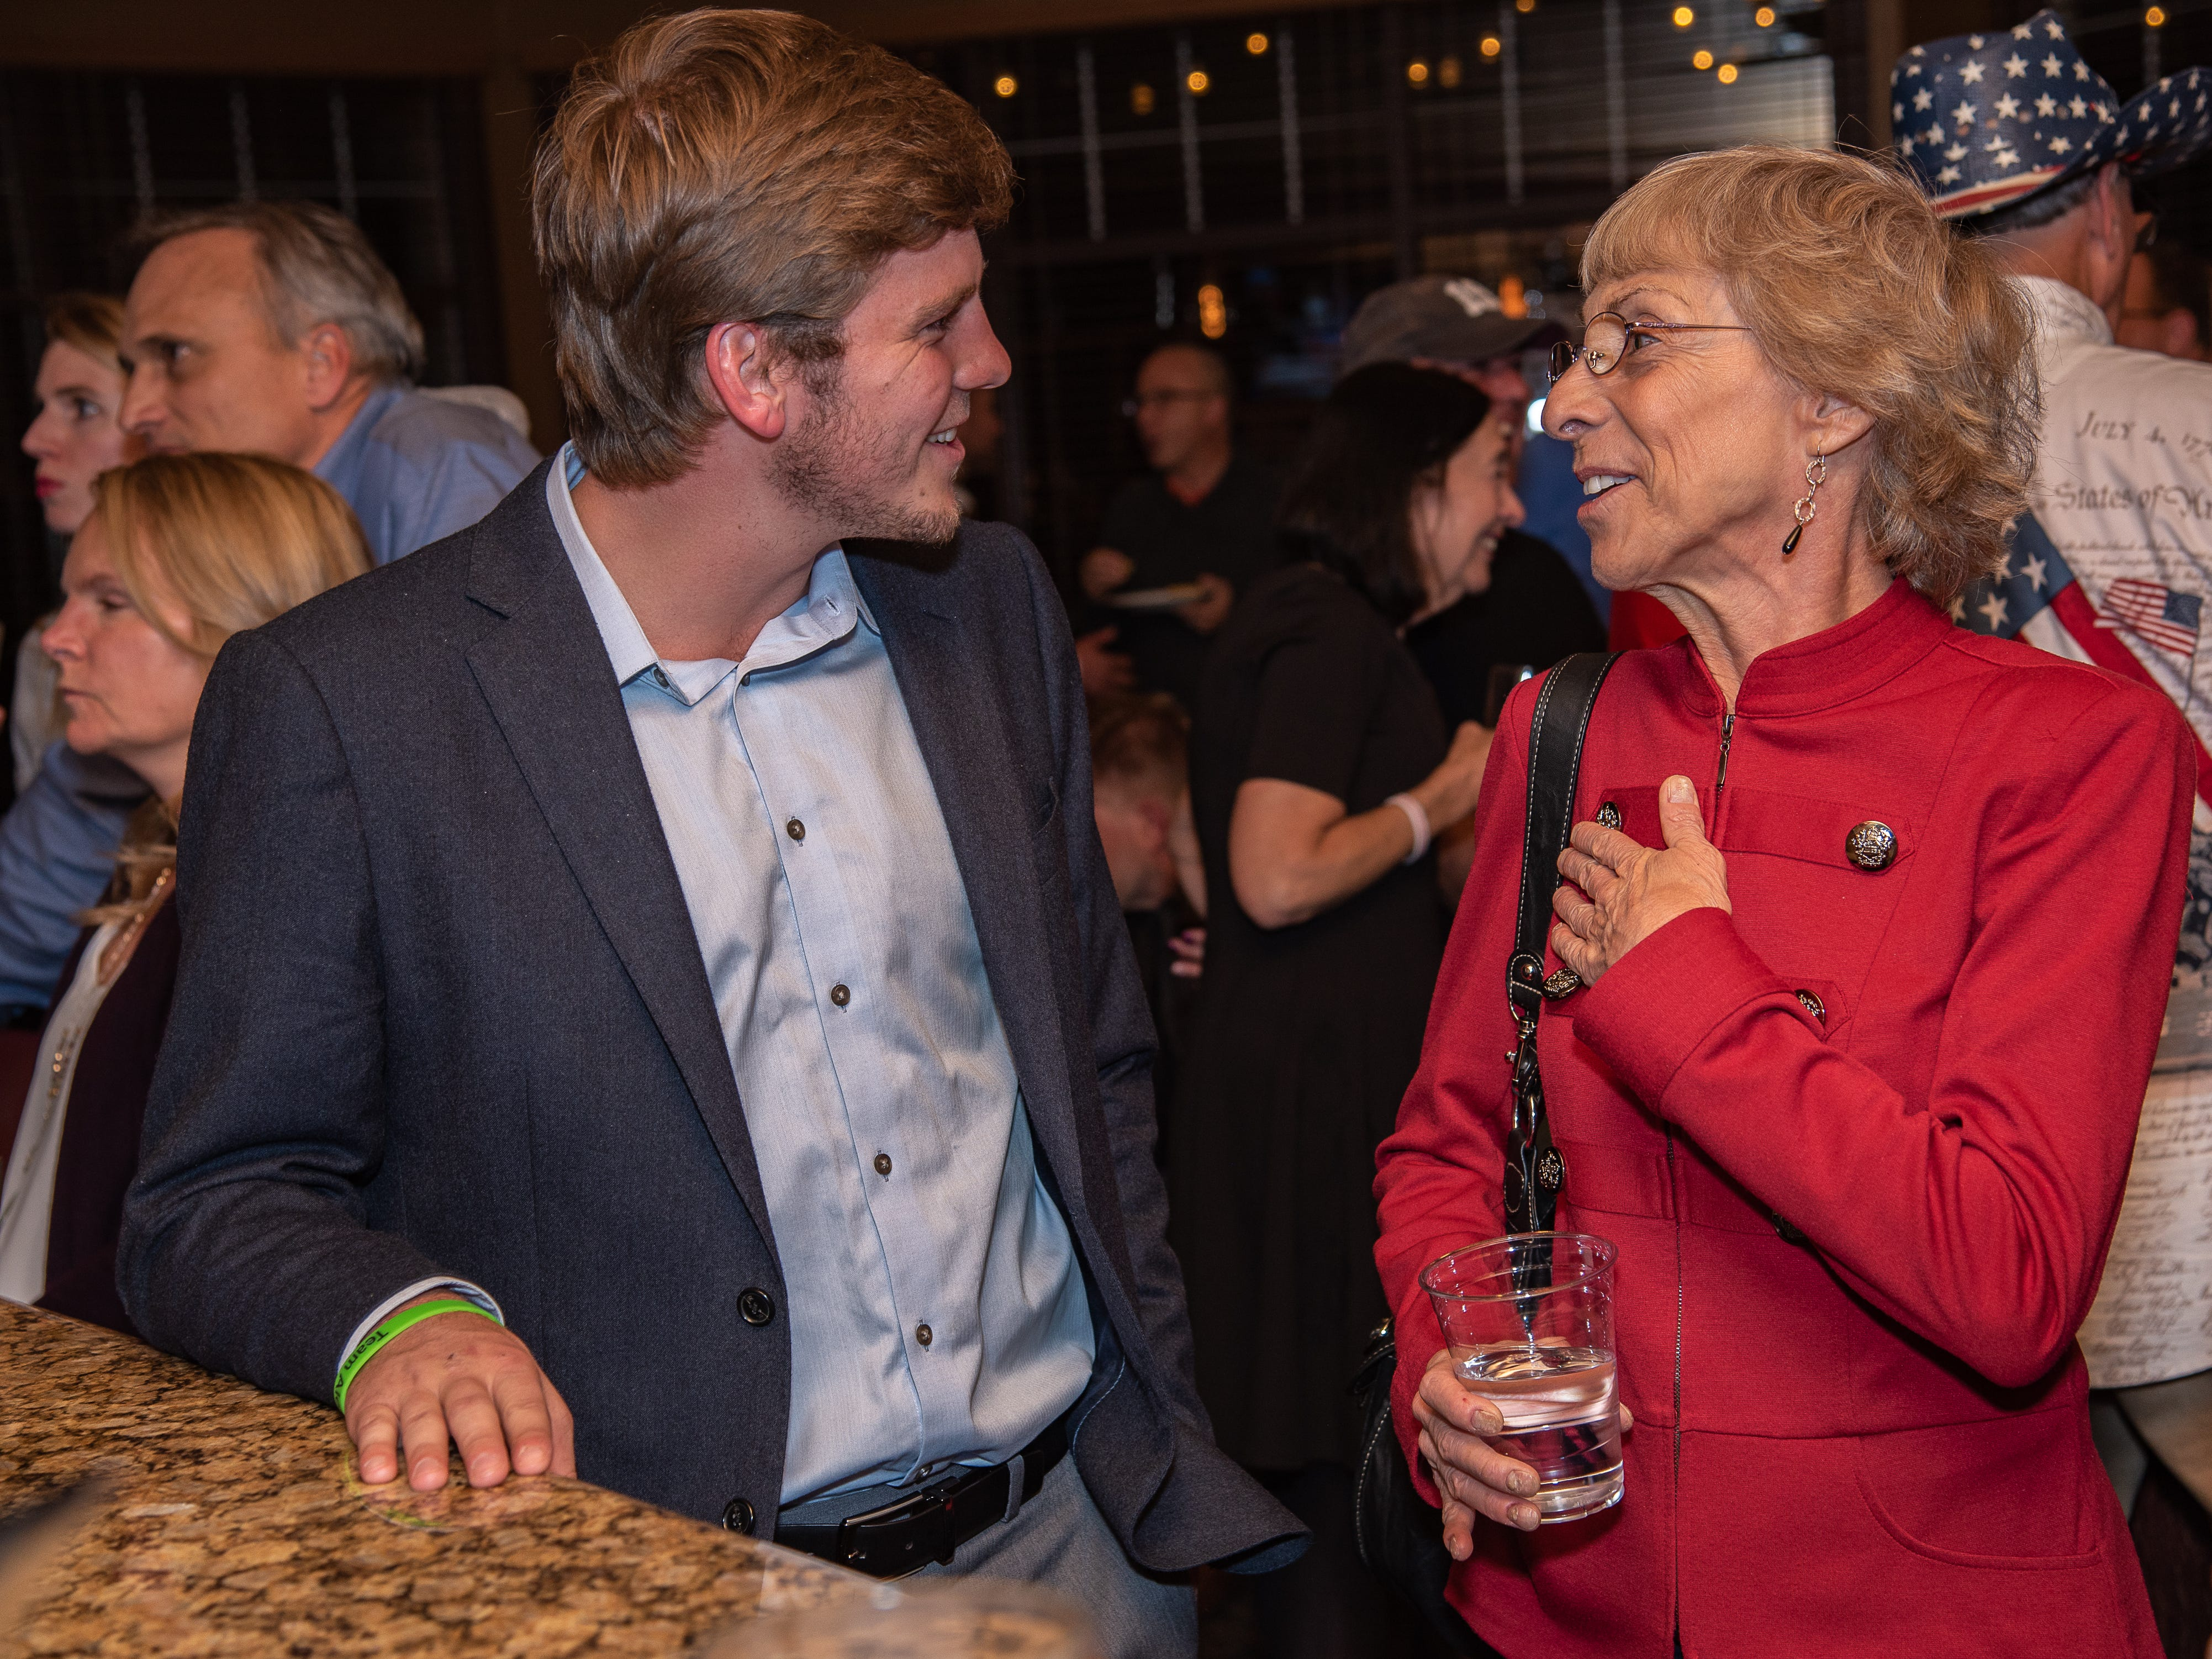 GOP House District 52 candidate Donna Walter speaks with Jack Brady, CSU student and GOP volunteer, at an election watch party on Tuesday, November 6, 2018, at Ptarmigan Country Club in Fort Collins, Colo.